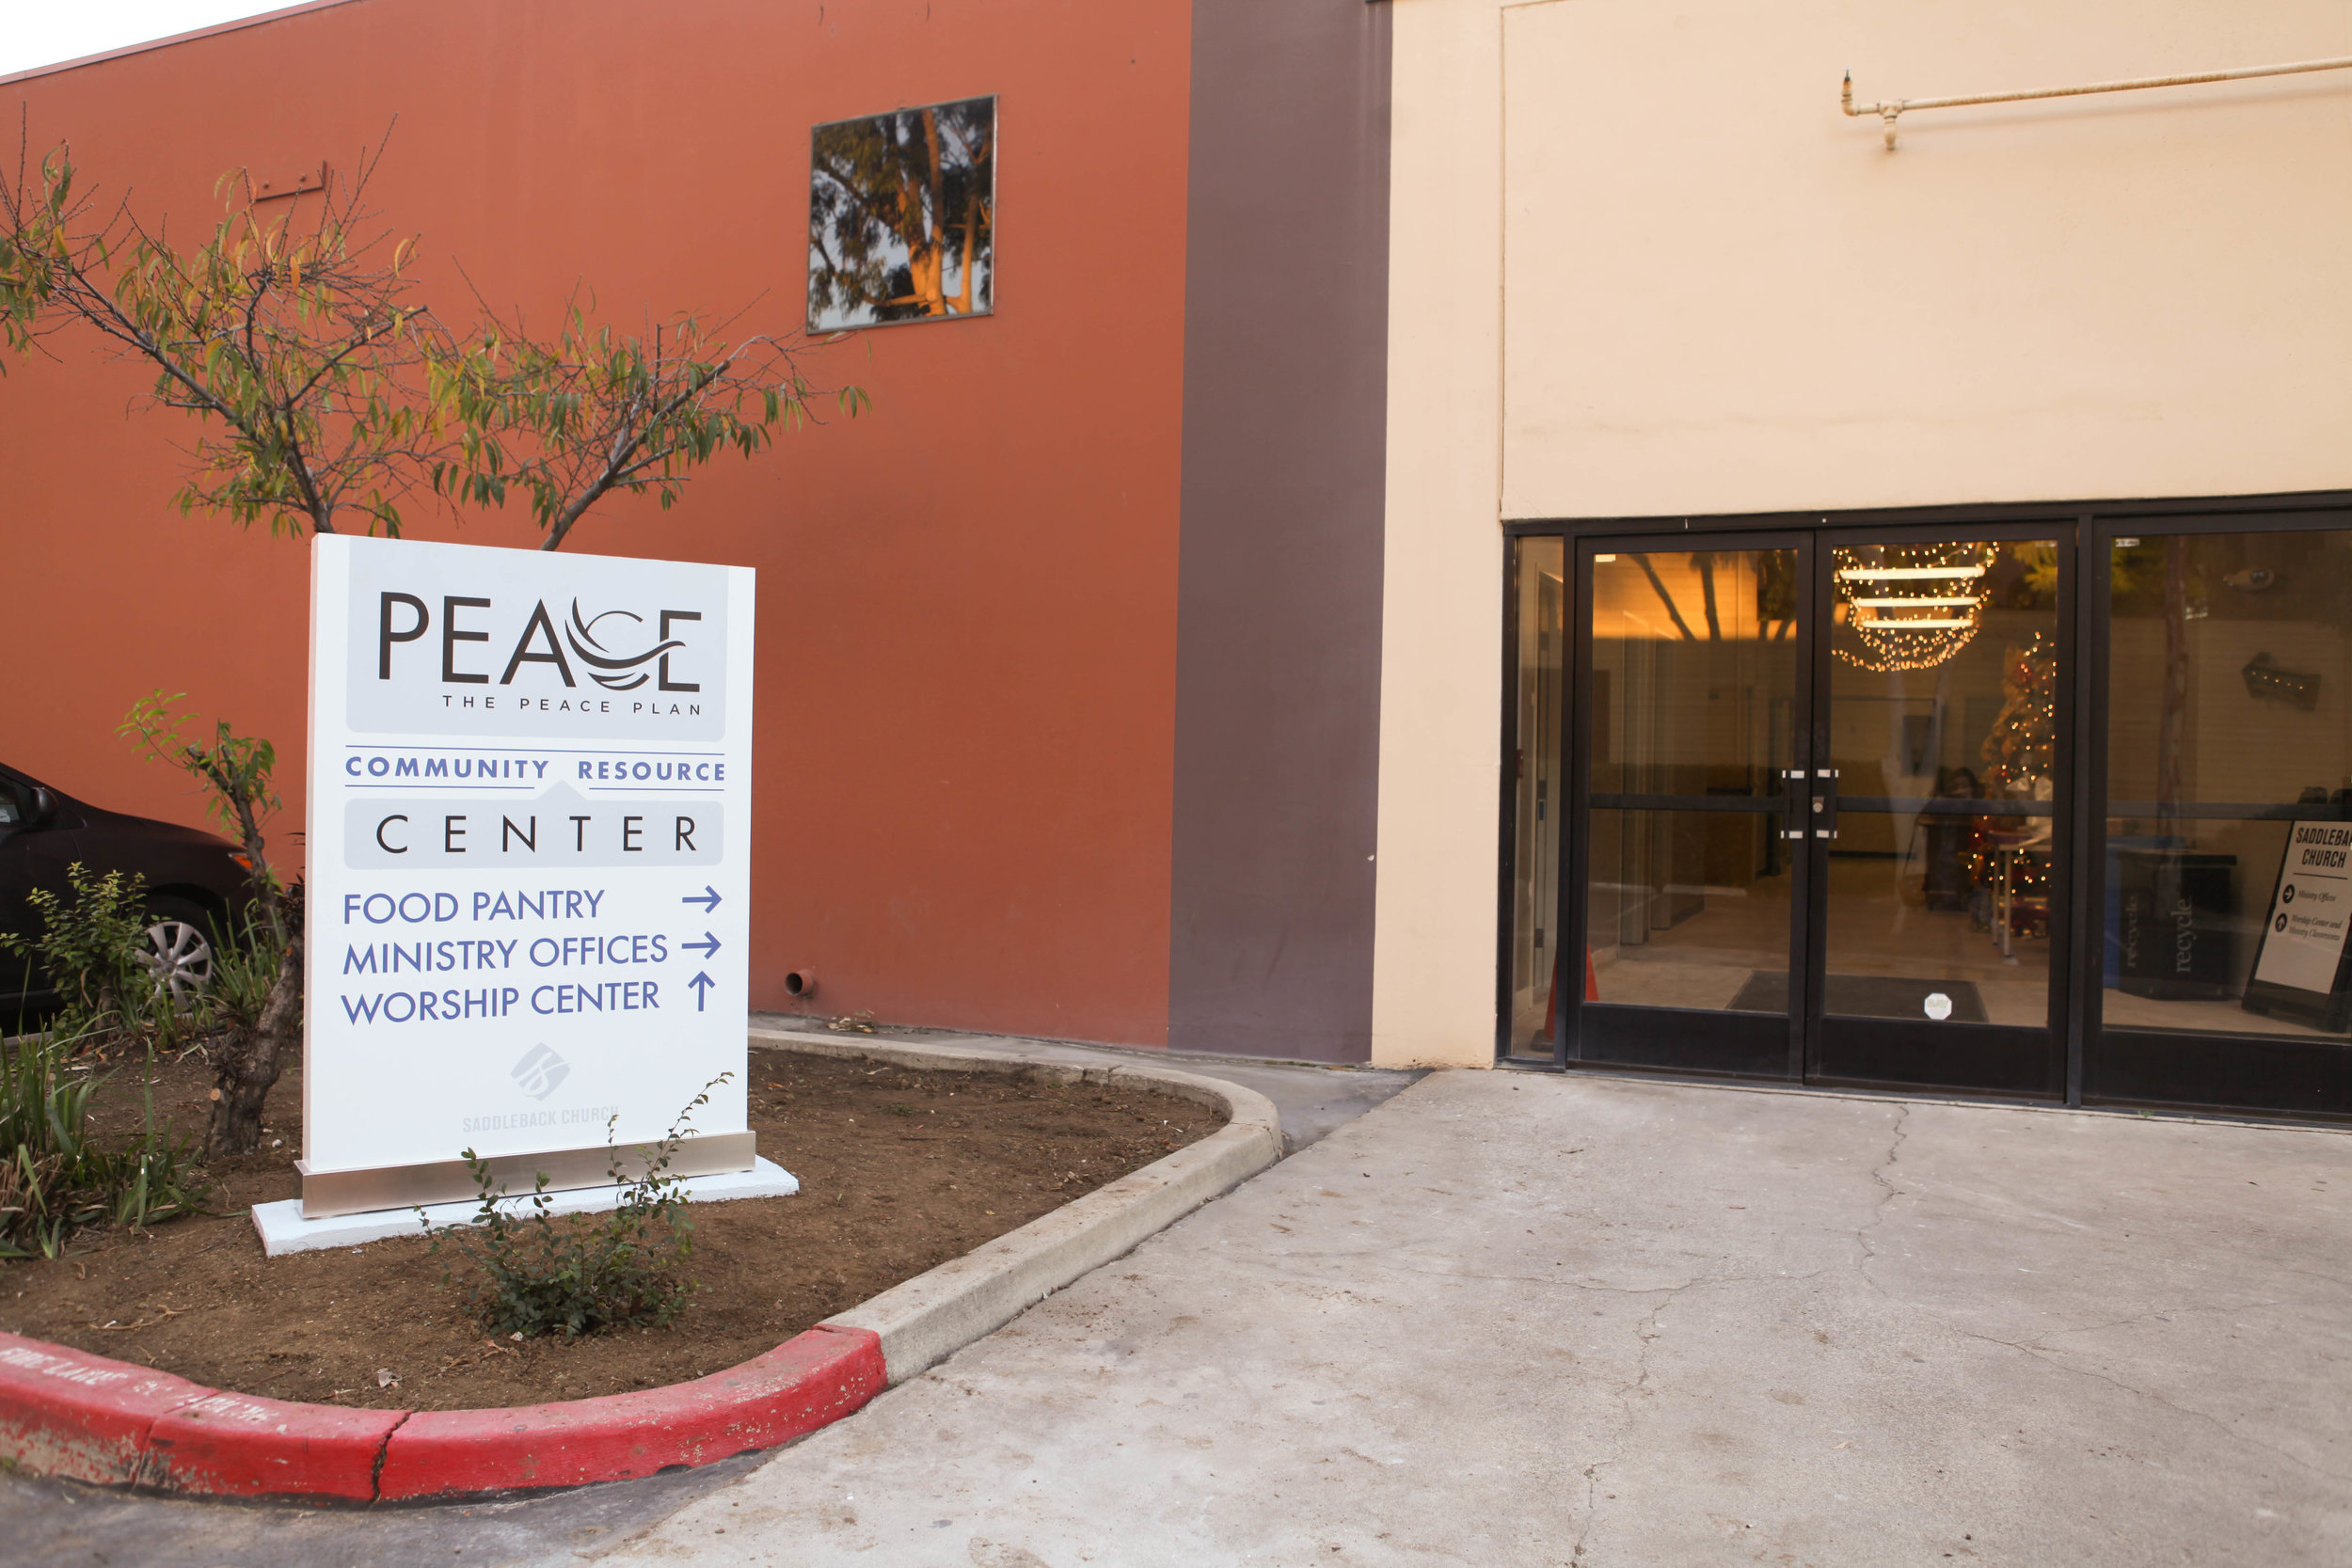 People and families in need come to the Saddleback Church PEACE Center food pantry for groceries.